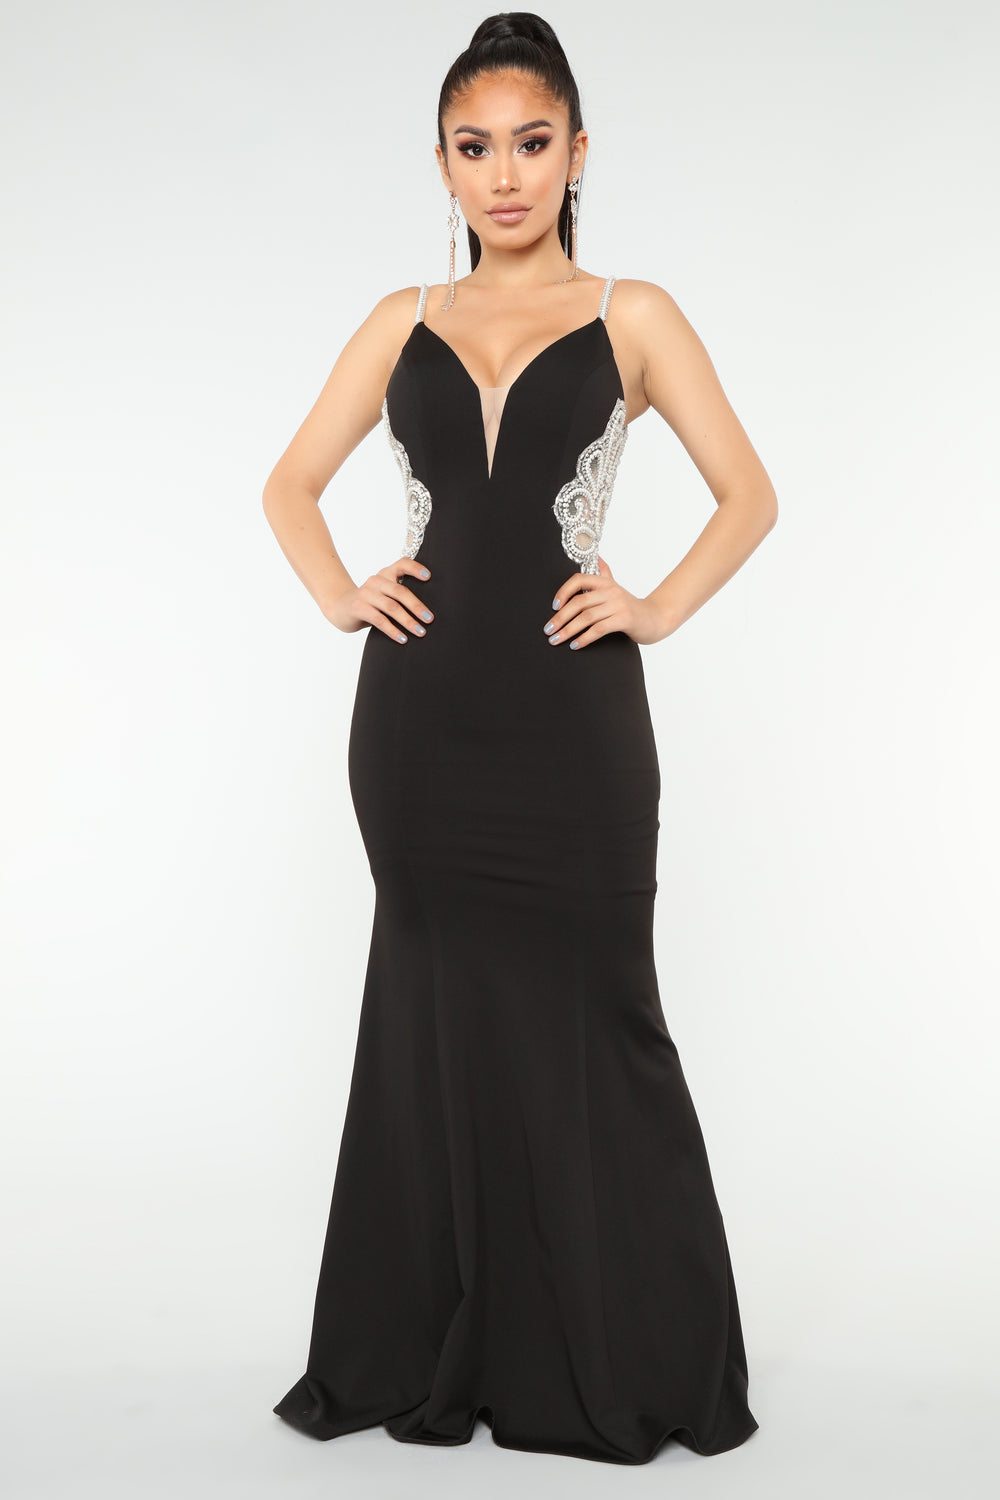 Imperial Beading Dress - Black